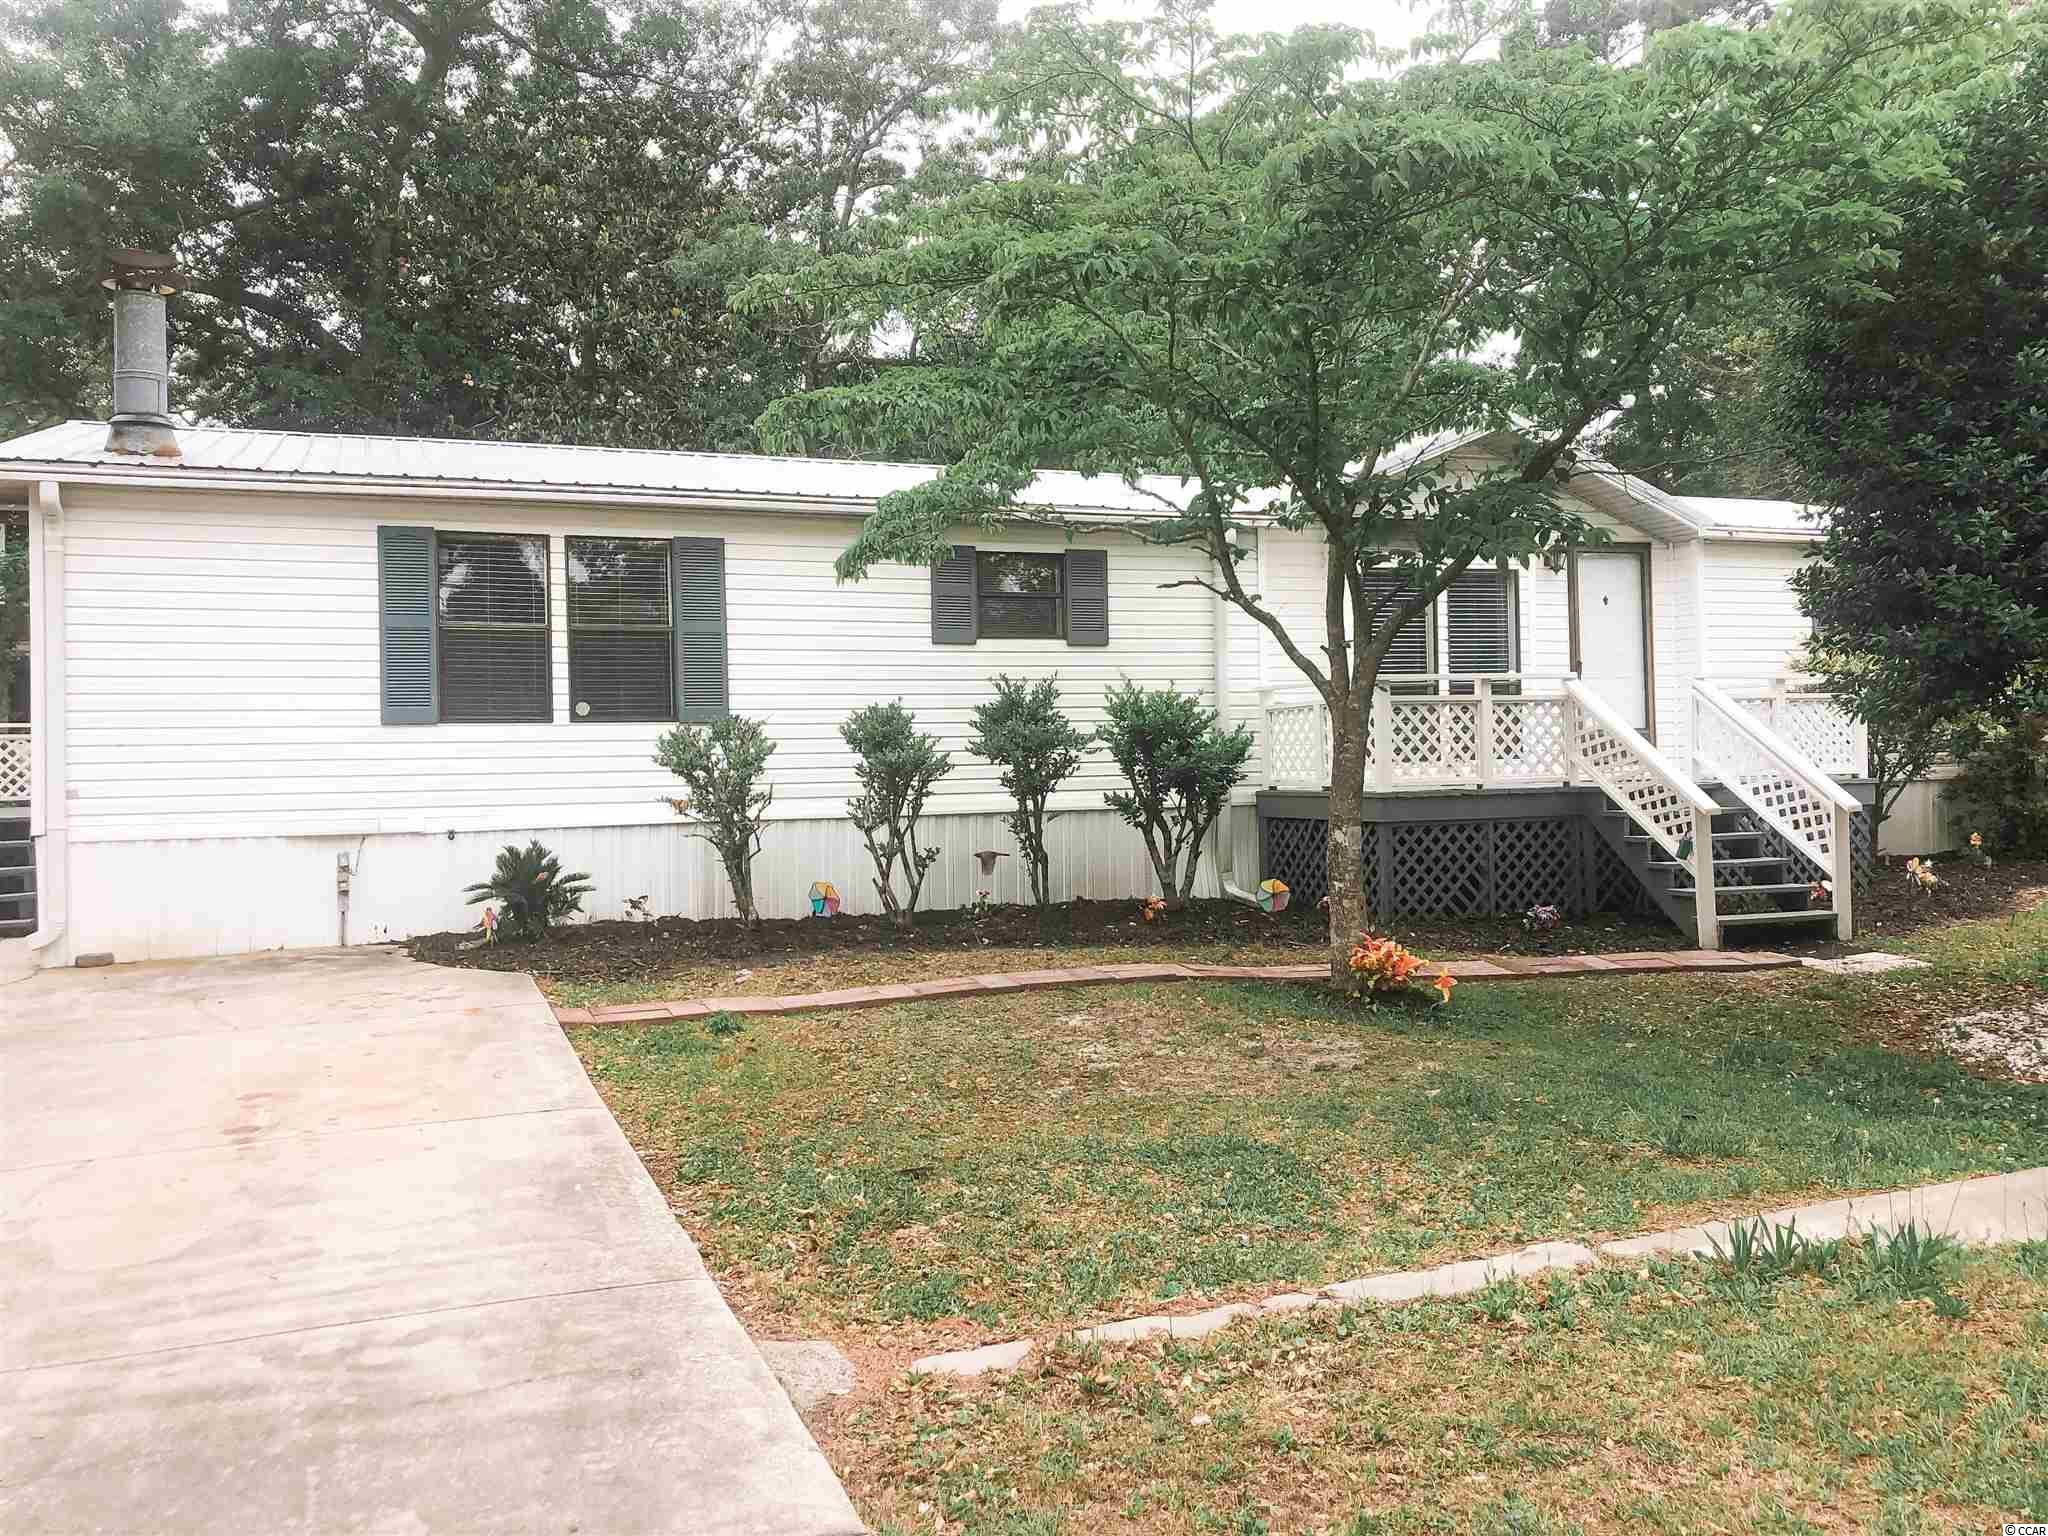 3 bedroom/2 bath - Living room, dining room, family room with fireplace, Kitchen offers a center island, breakfast bar, desk and a large laundry area.  spacious home with a one car carport and a nice storage shed, Two decks. Perfect location less than 5 minute to the beach. New AC installed 5/10/21.